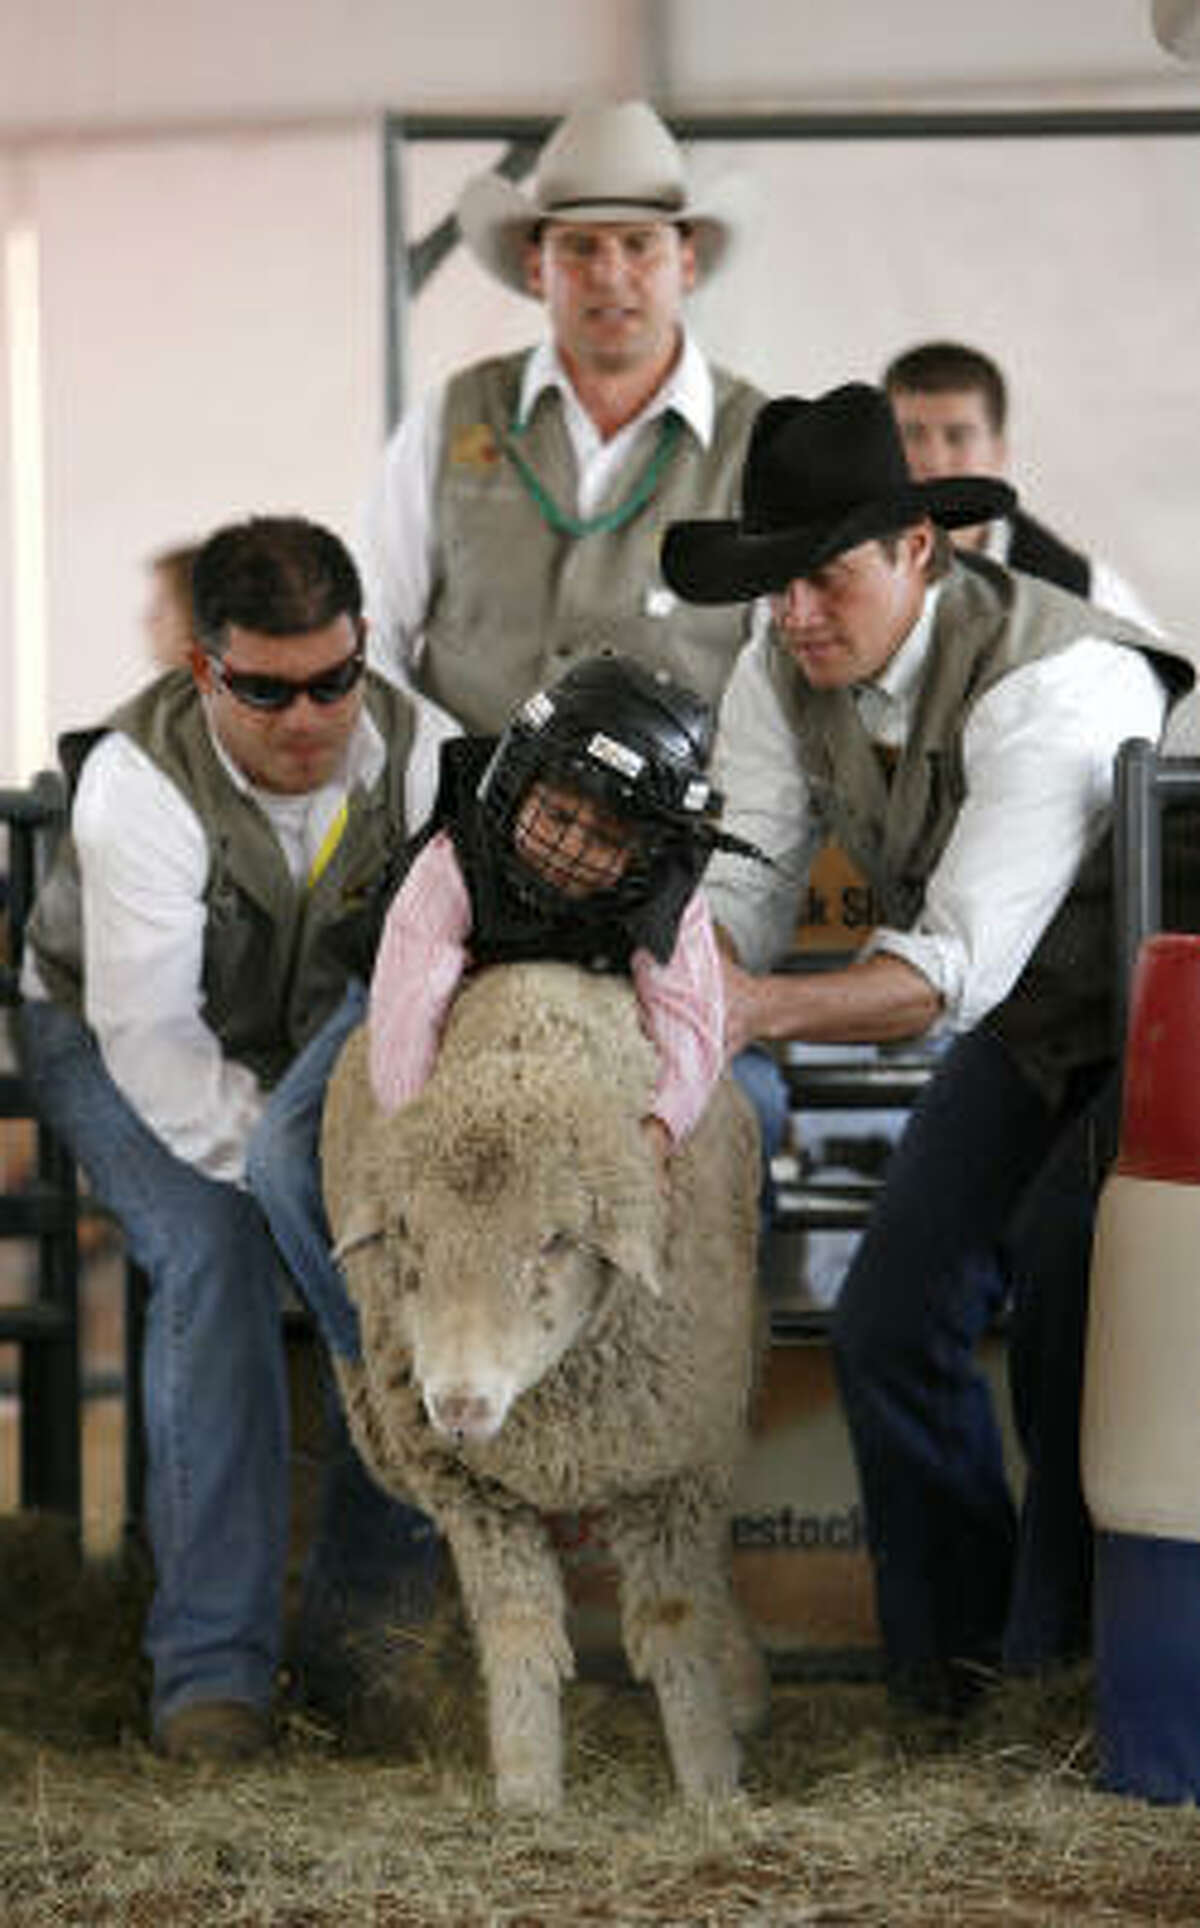 Sarah Schwarzbach, of Houston, gets some help coming out of the chute during the Mutton Bustin' in Kids Country at the Houston Livestock Show and Rodeo.